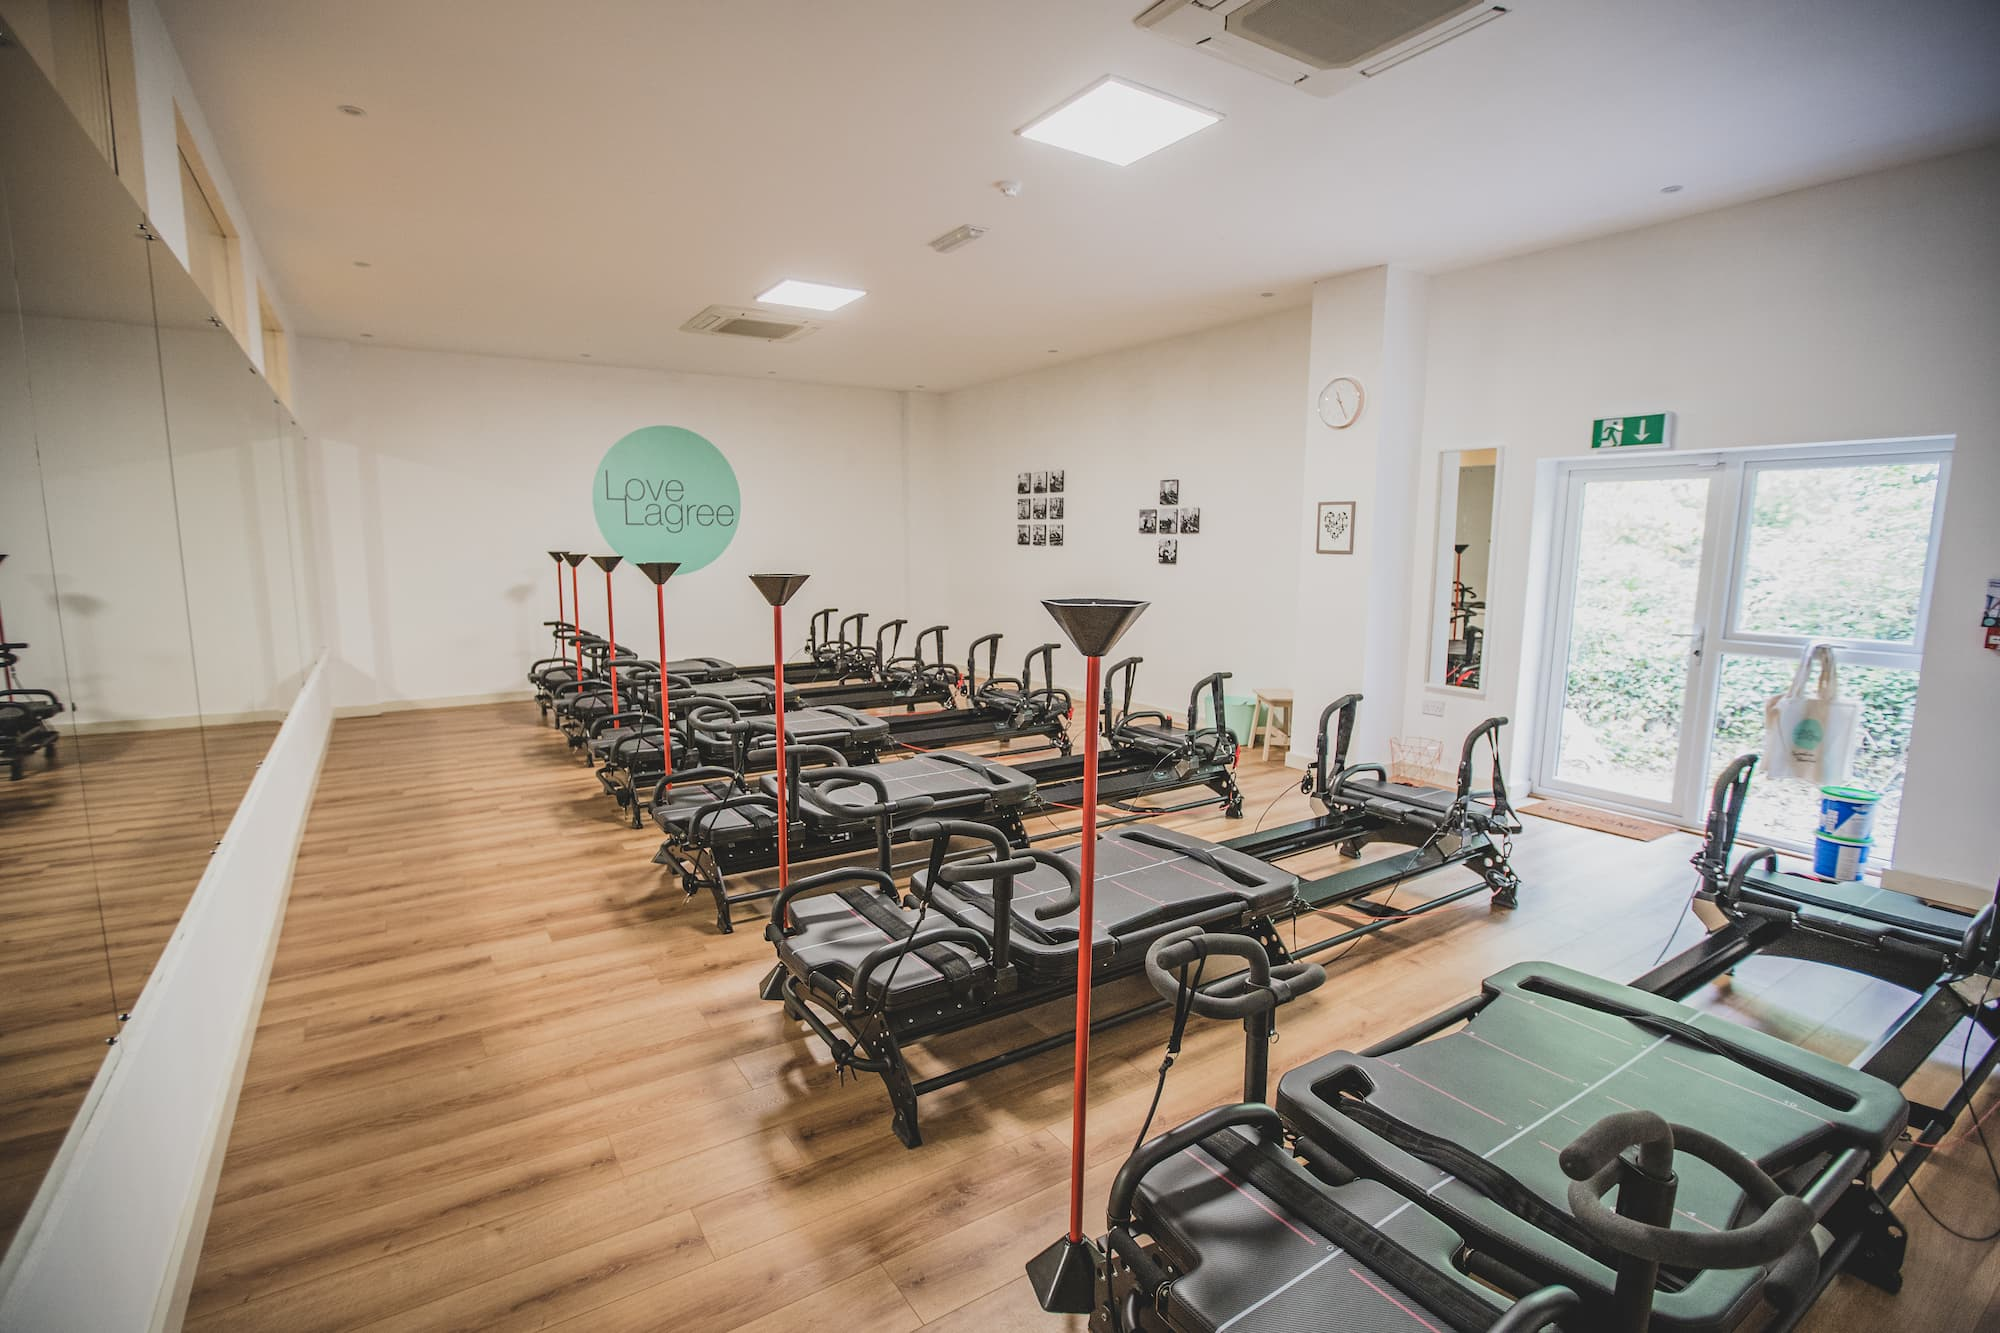 A large gym room, with equipment and a mirror spanning the width of the wall.